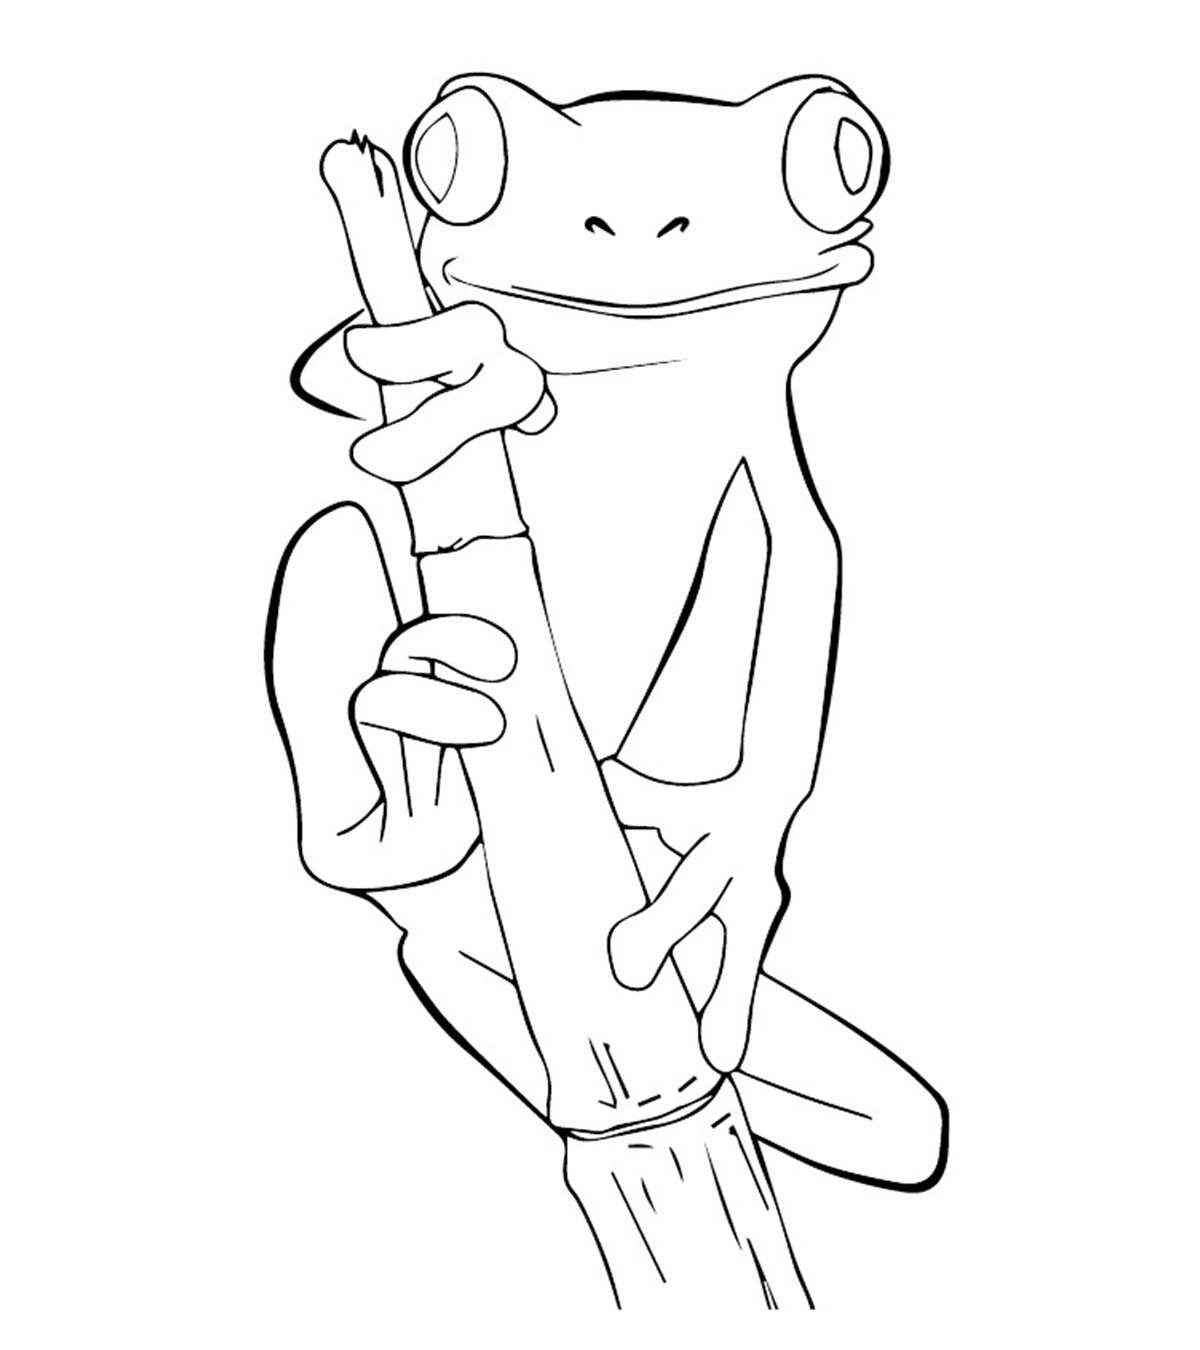 Free Kids Hunting Coloring Page - Coloring Home | 1350x1200